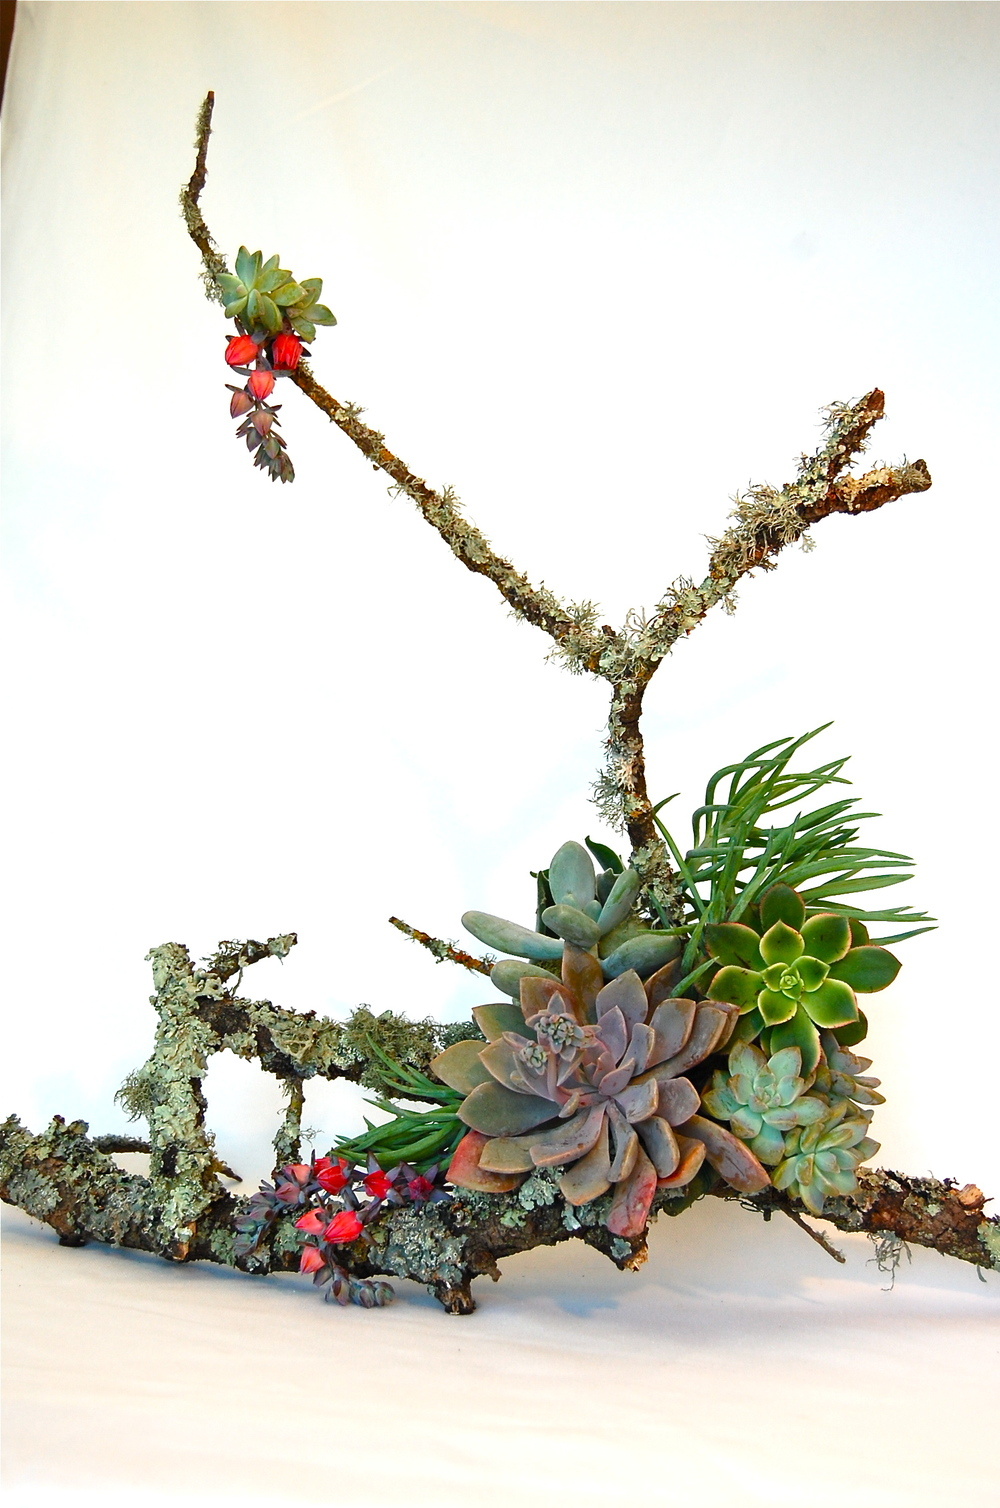 Medium Branch with Assorted Succulents